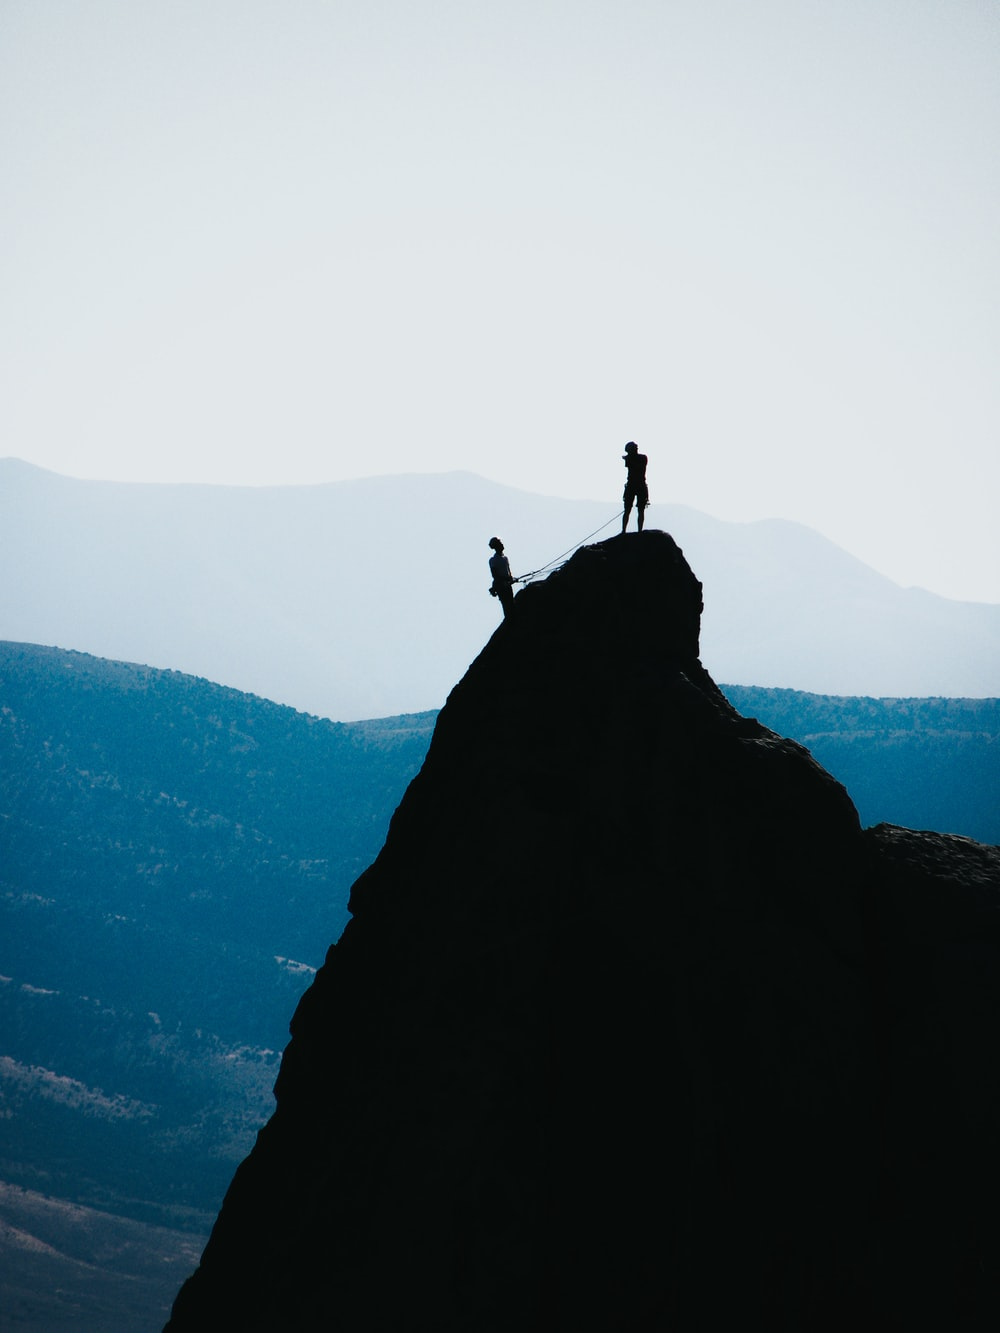 silhouette of two people standing on mountain during daytime